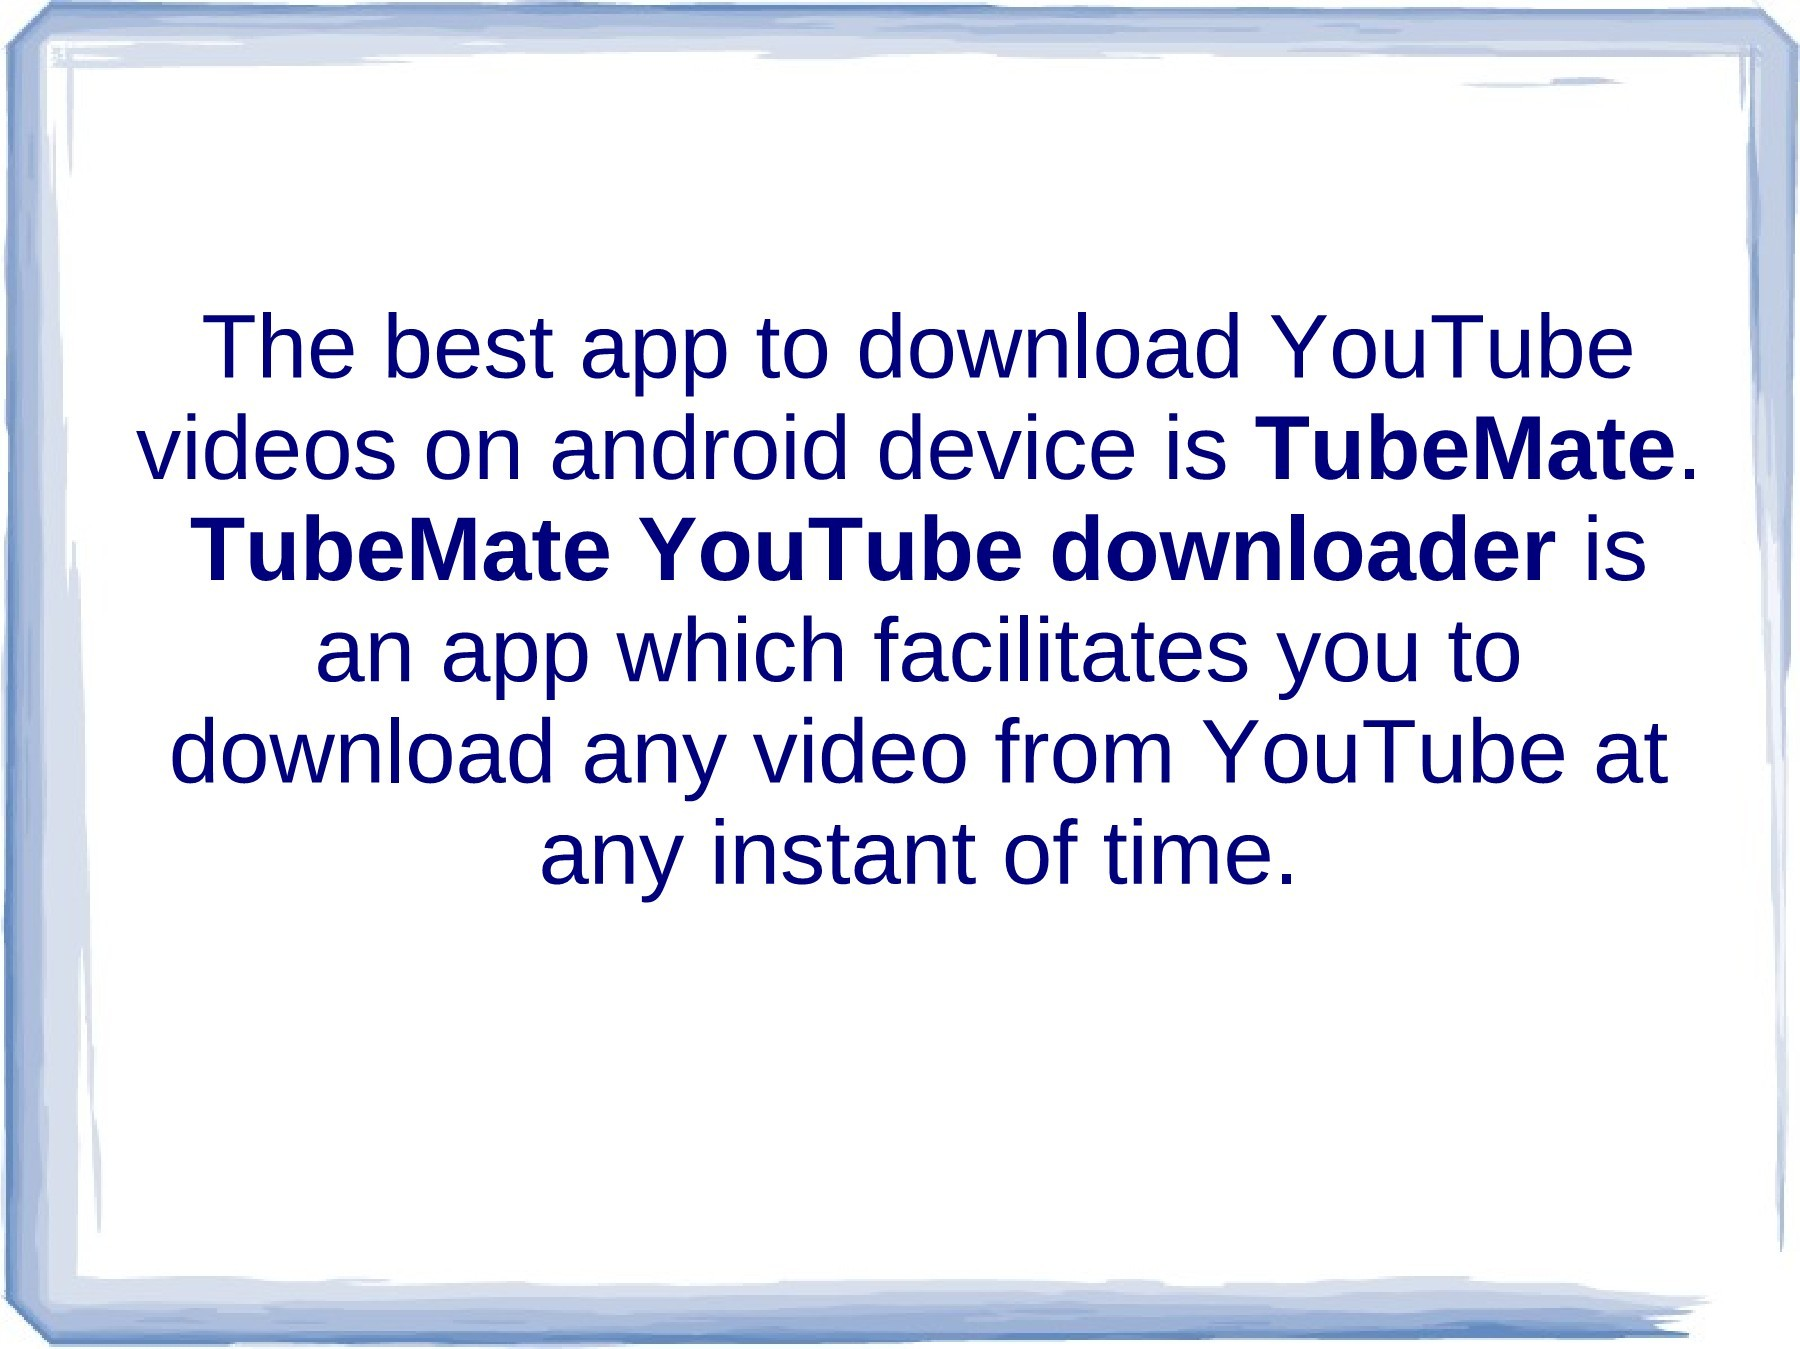 How to download TubeMate YouTube downloader on android smartphone